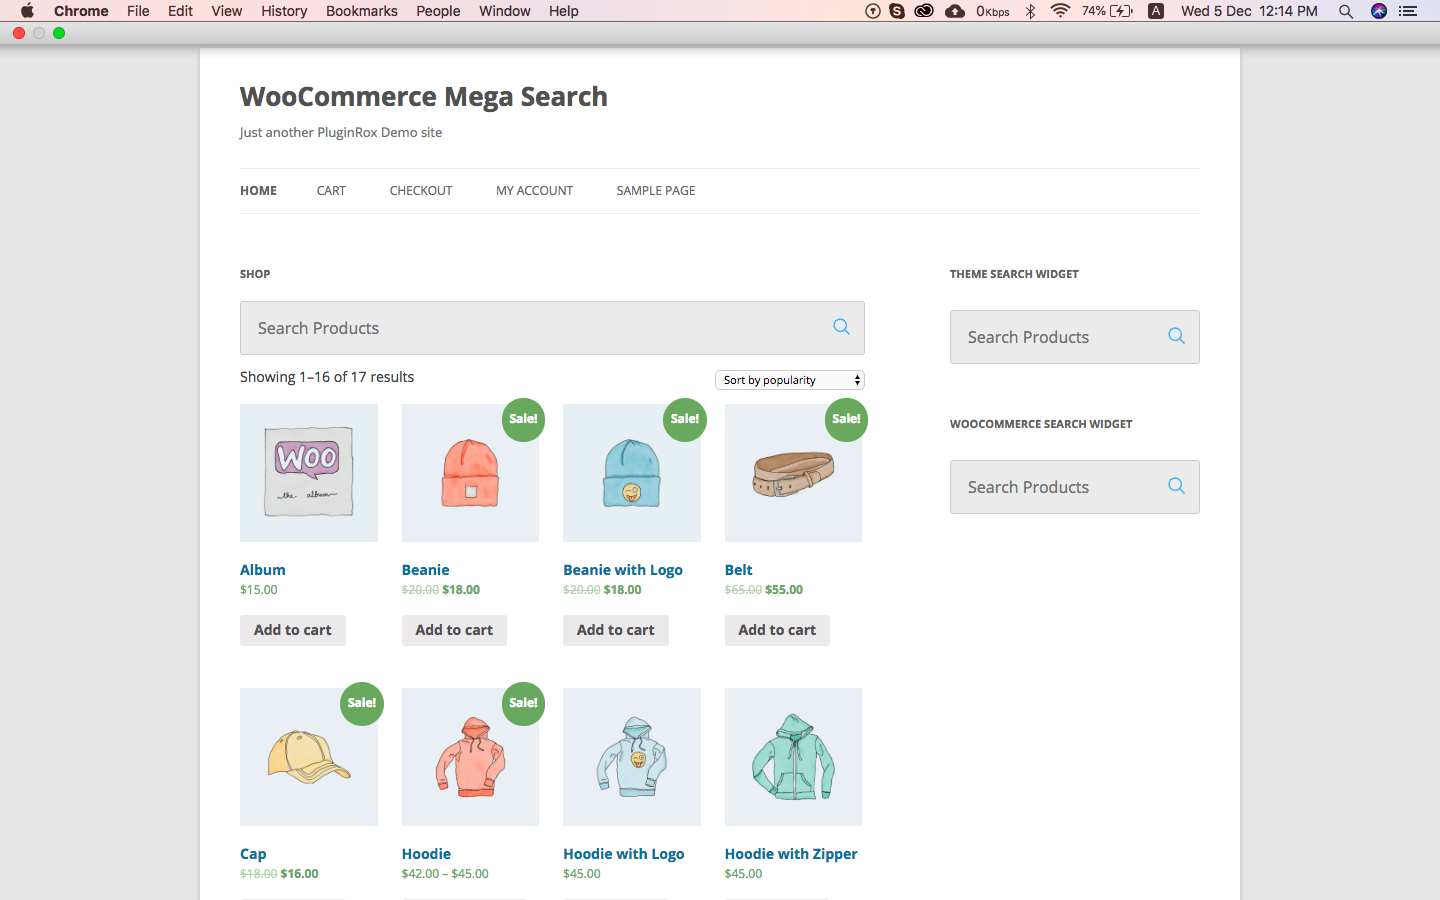 WooCommerce Mega Search